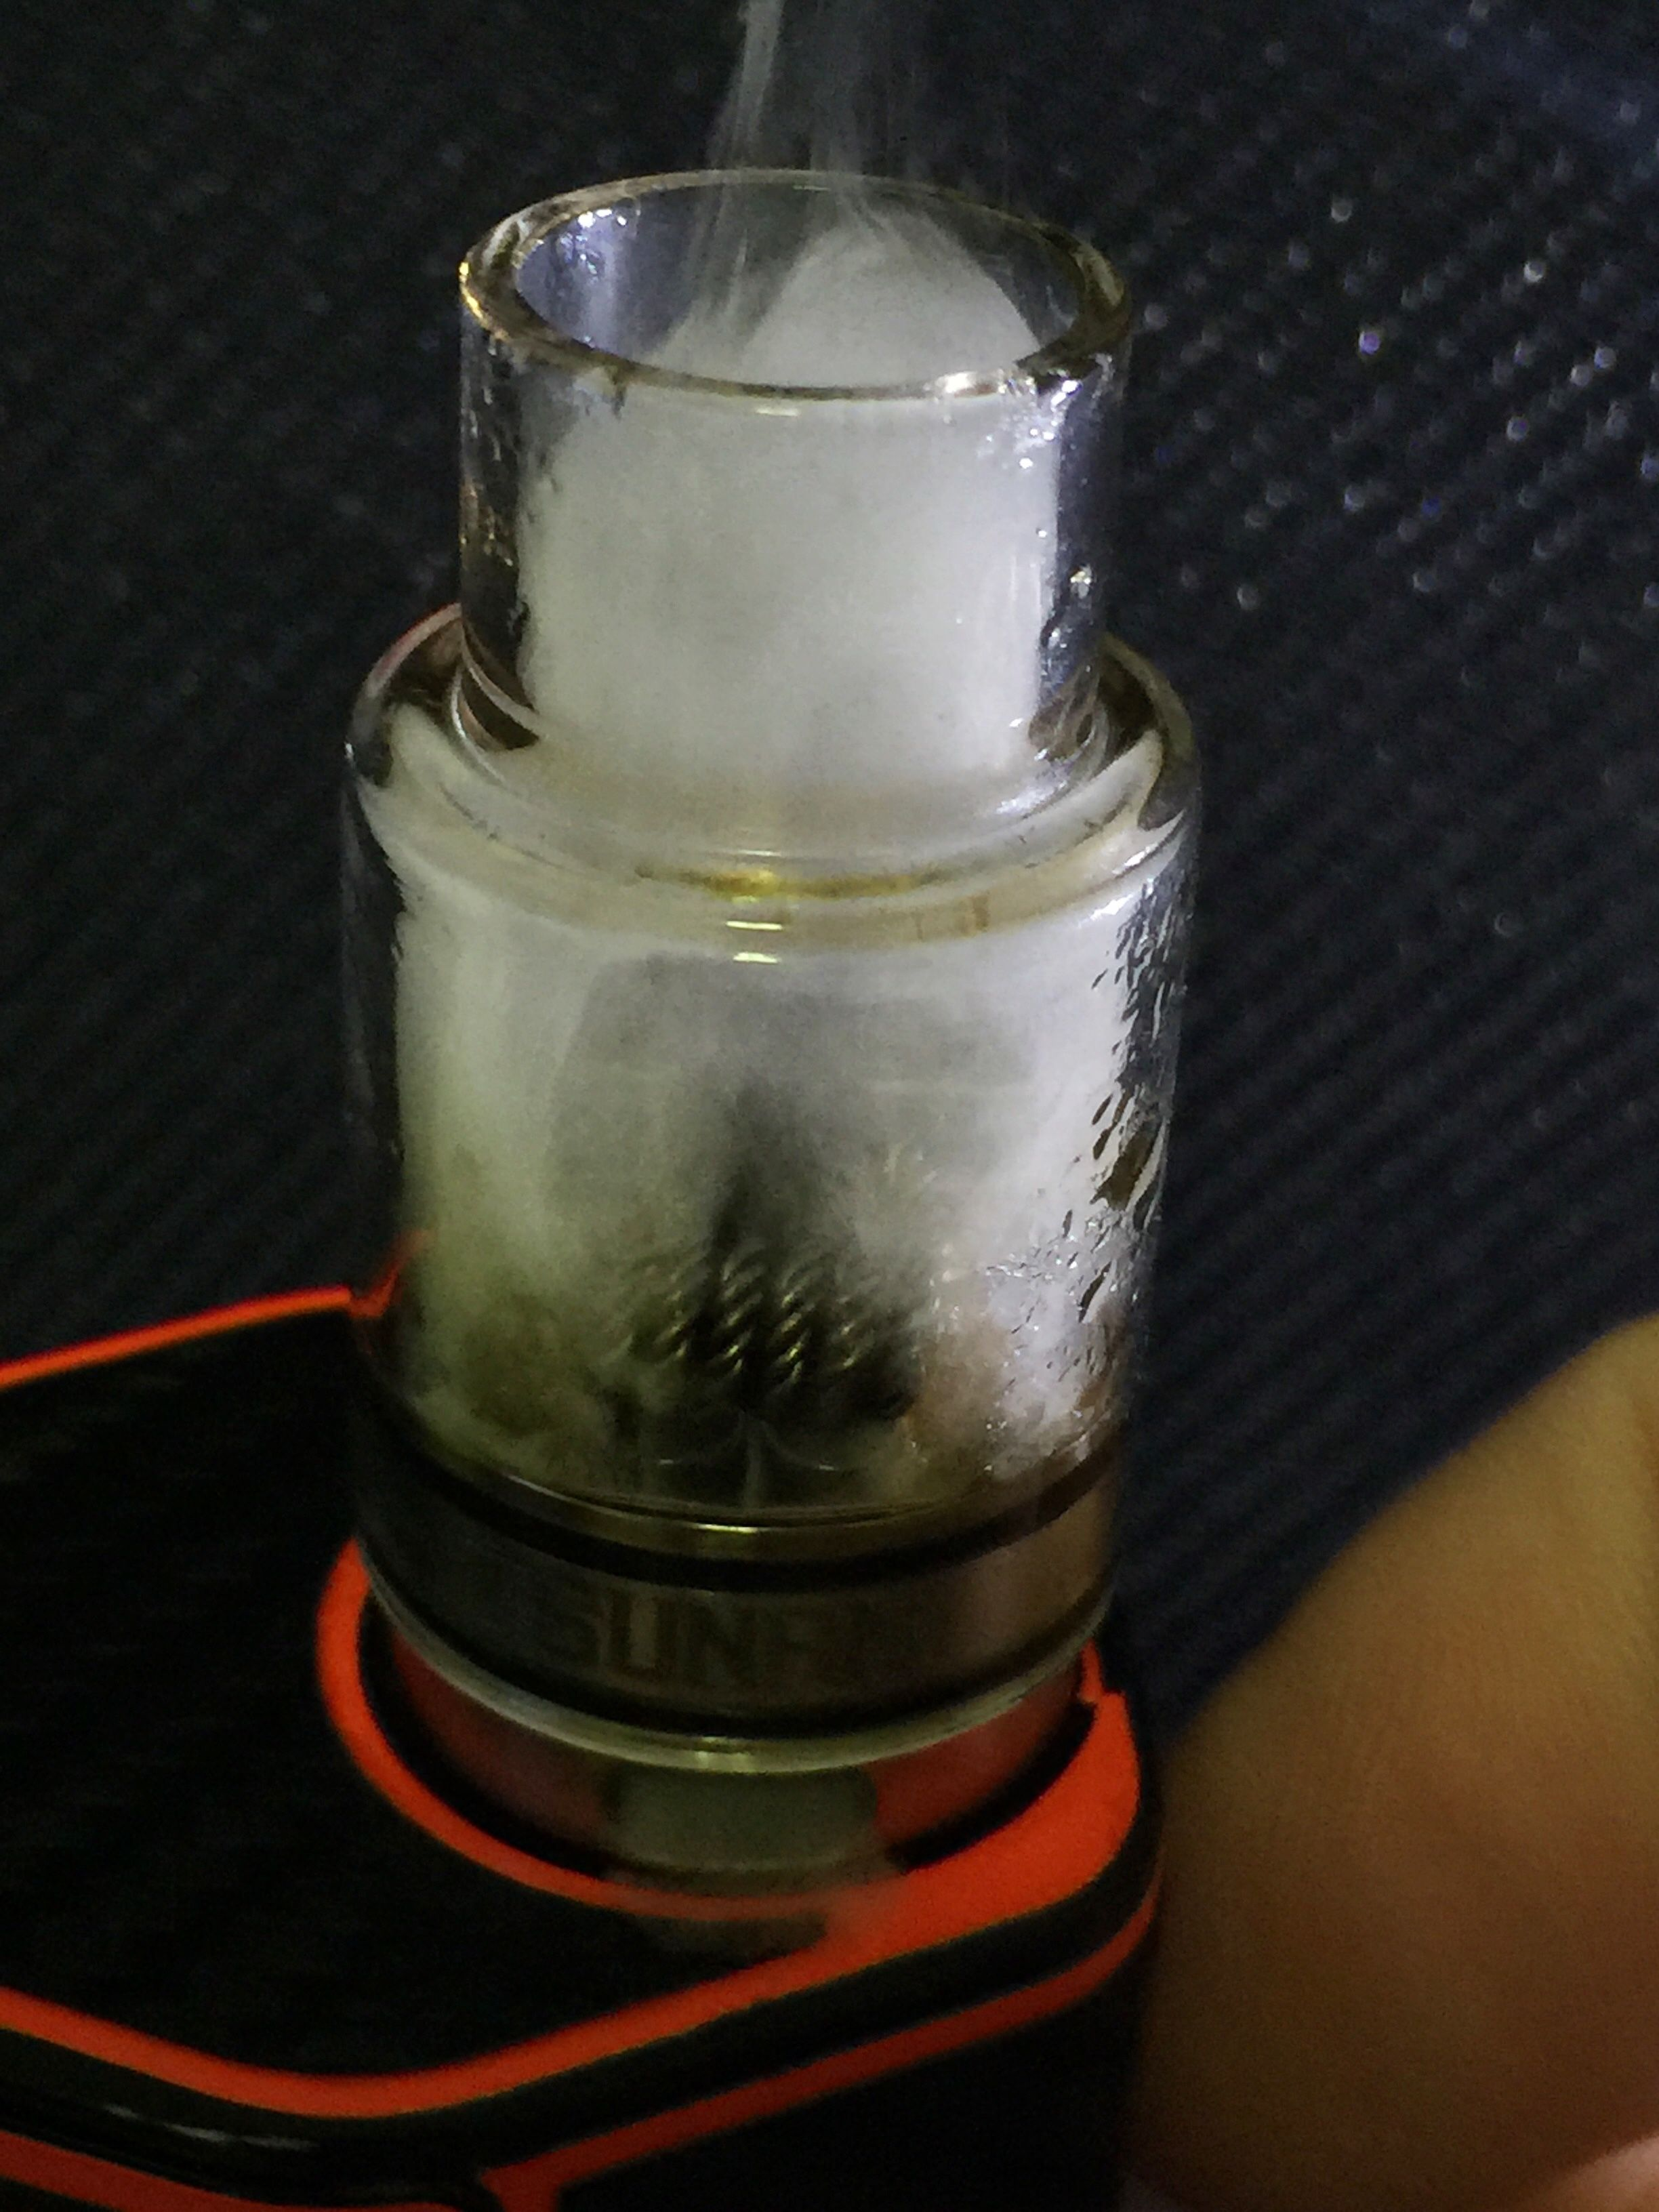 dual 26g quad twisted 6 wraps 2 5m 1ohm 110w on the